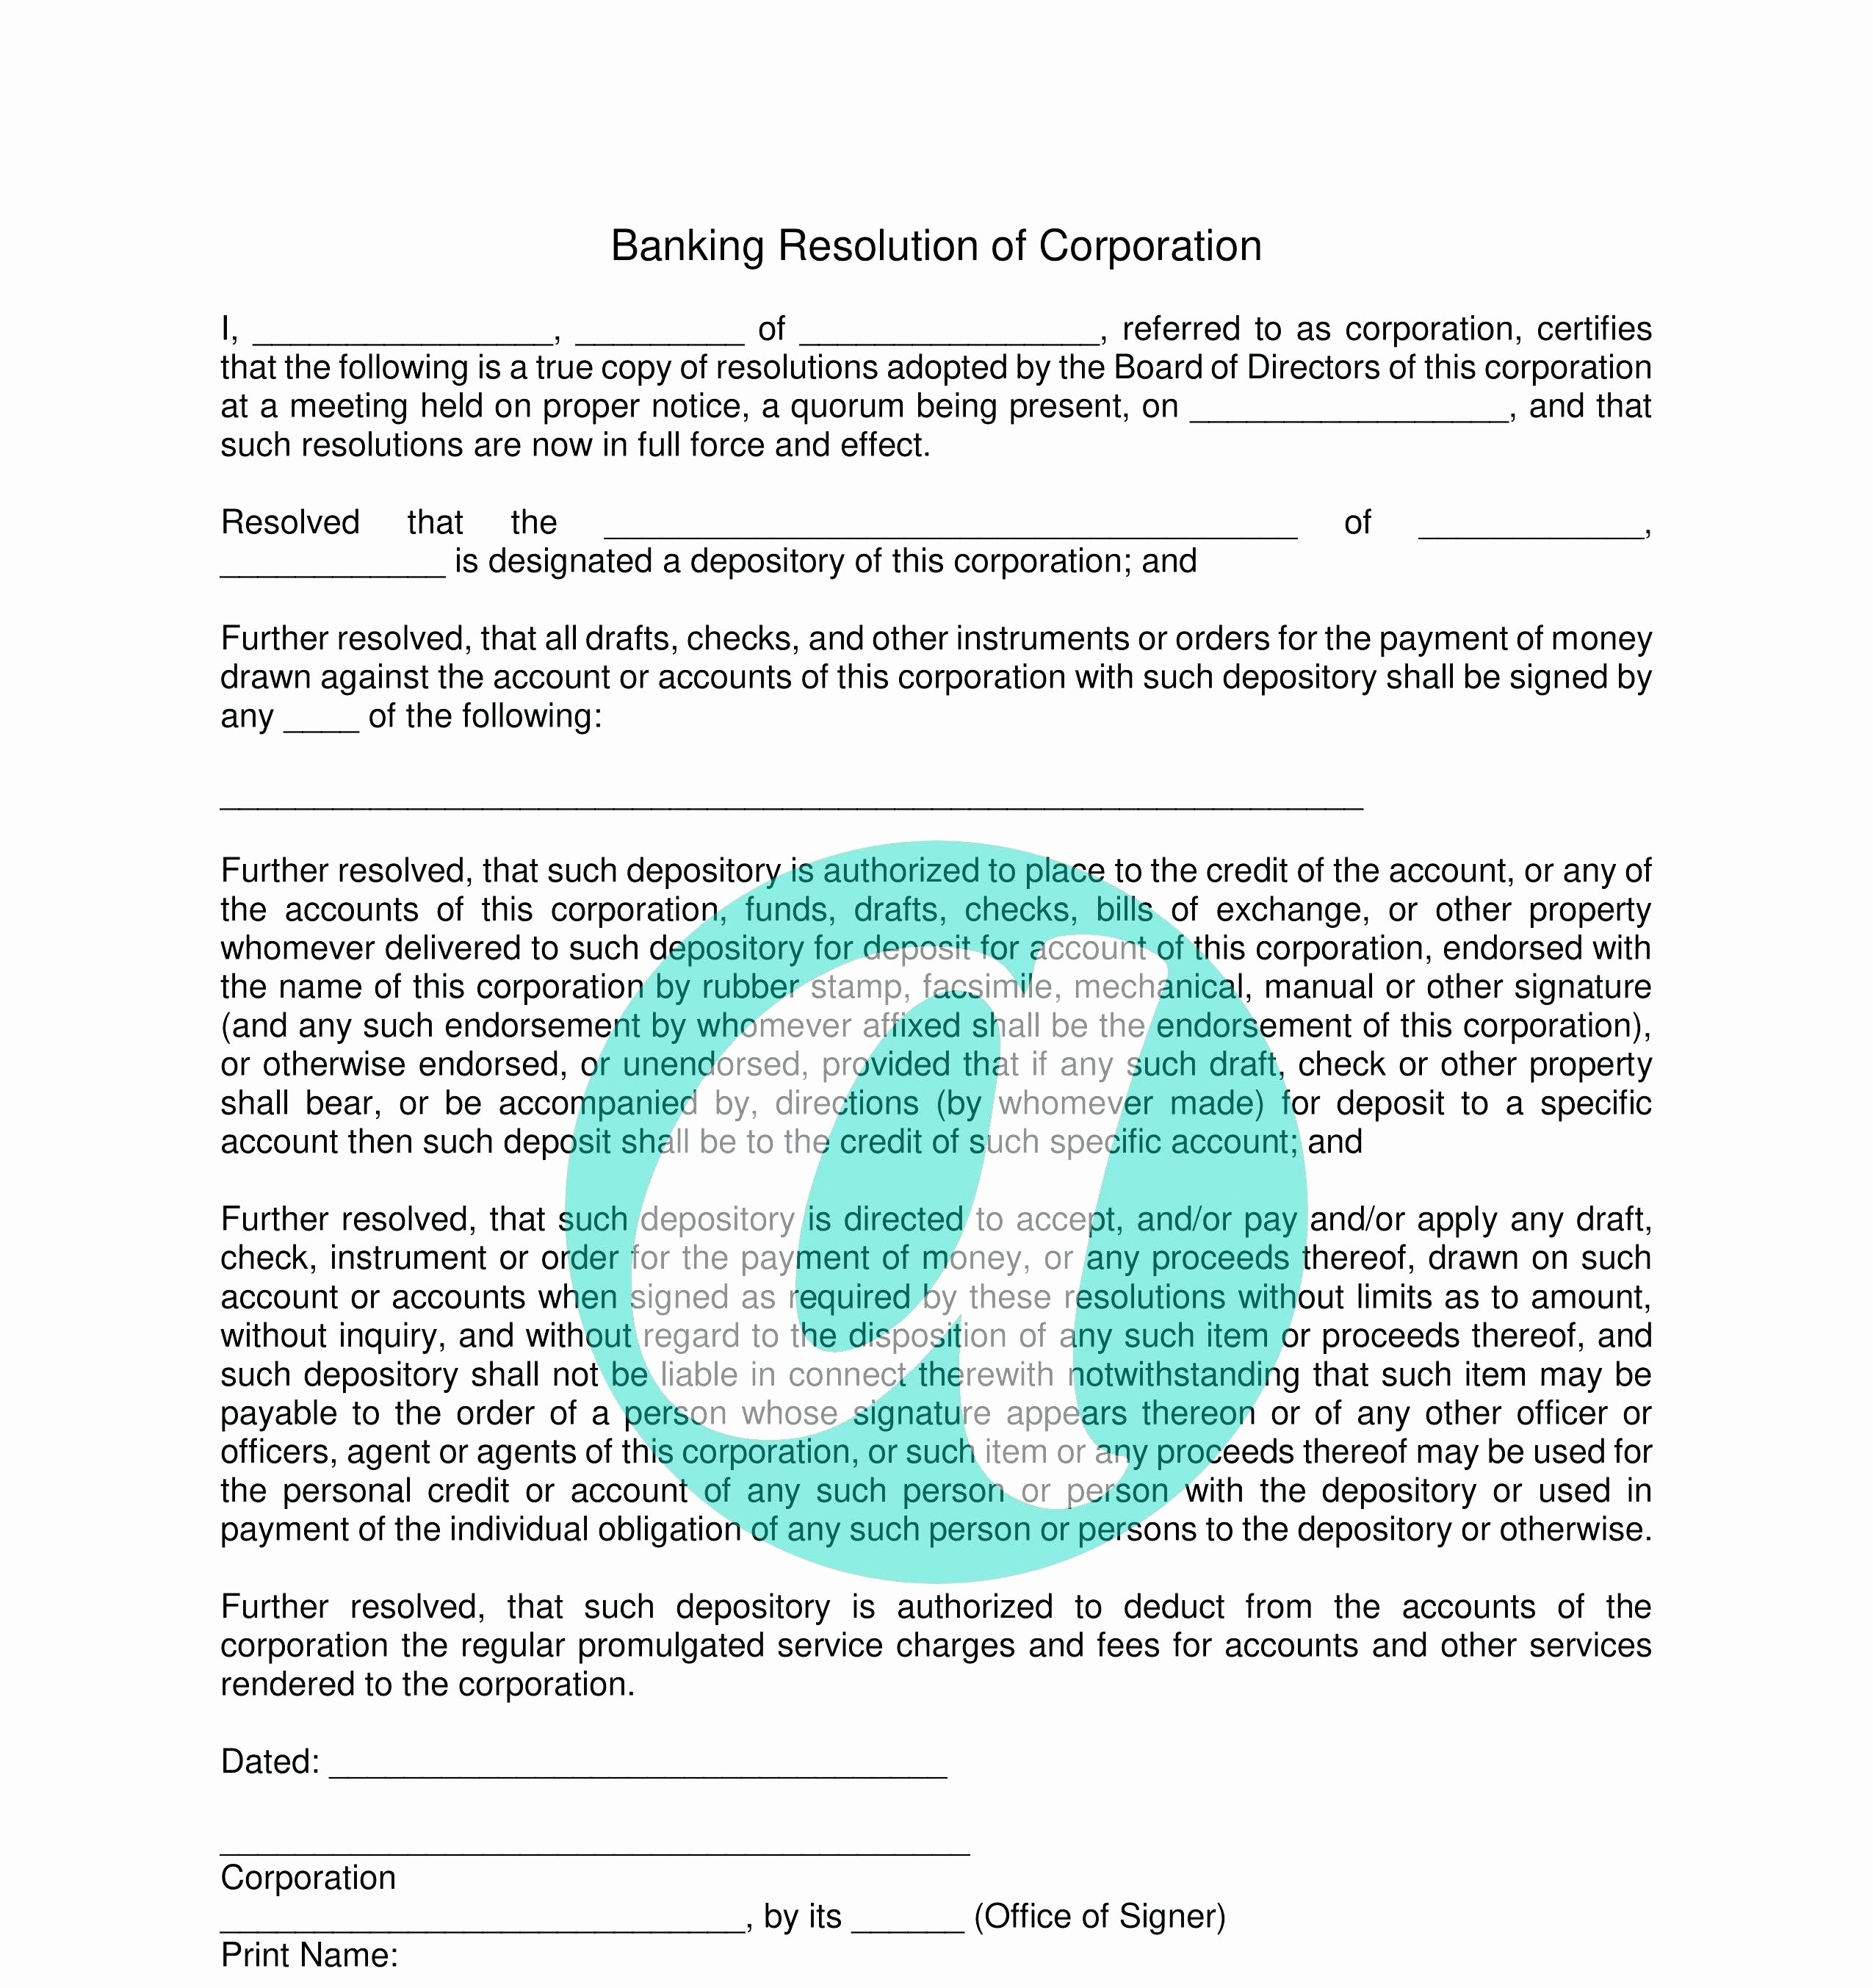 Corporate Resolution Authorized Signers Template Fresh Corporate Resolution Authorized Signers Template Choice